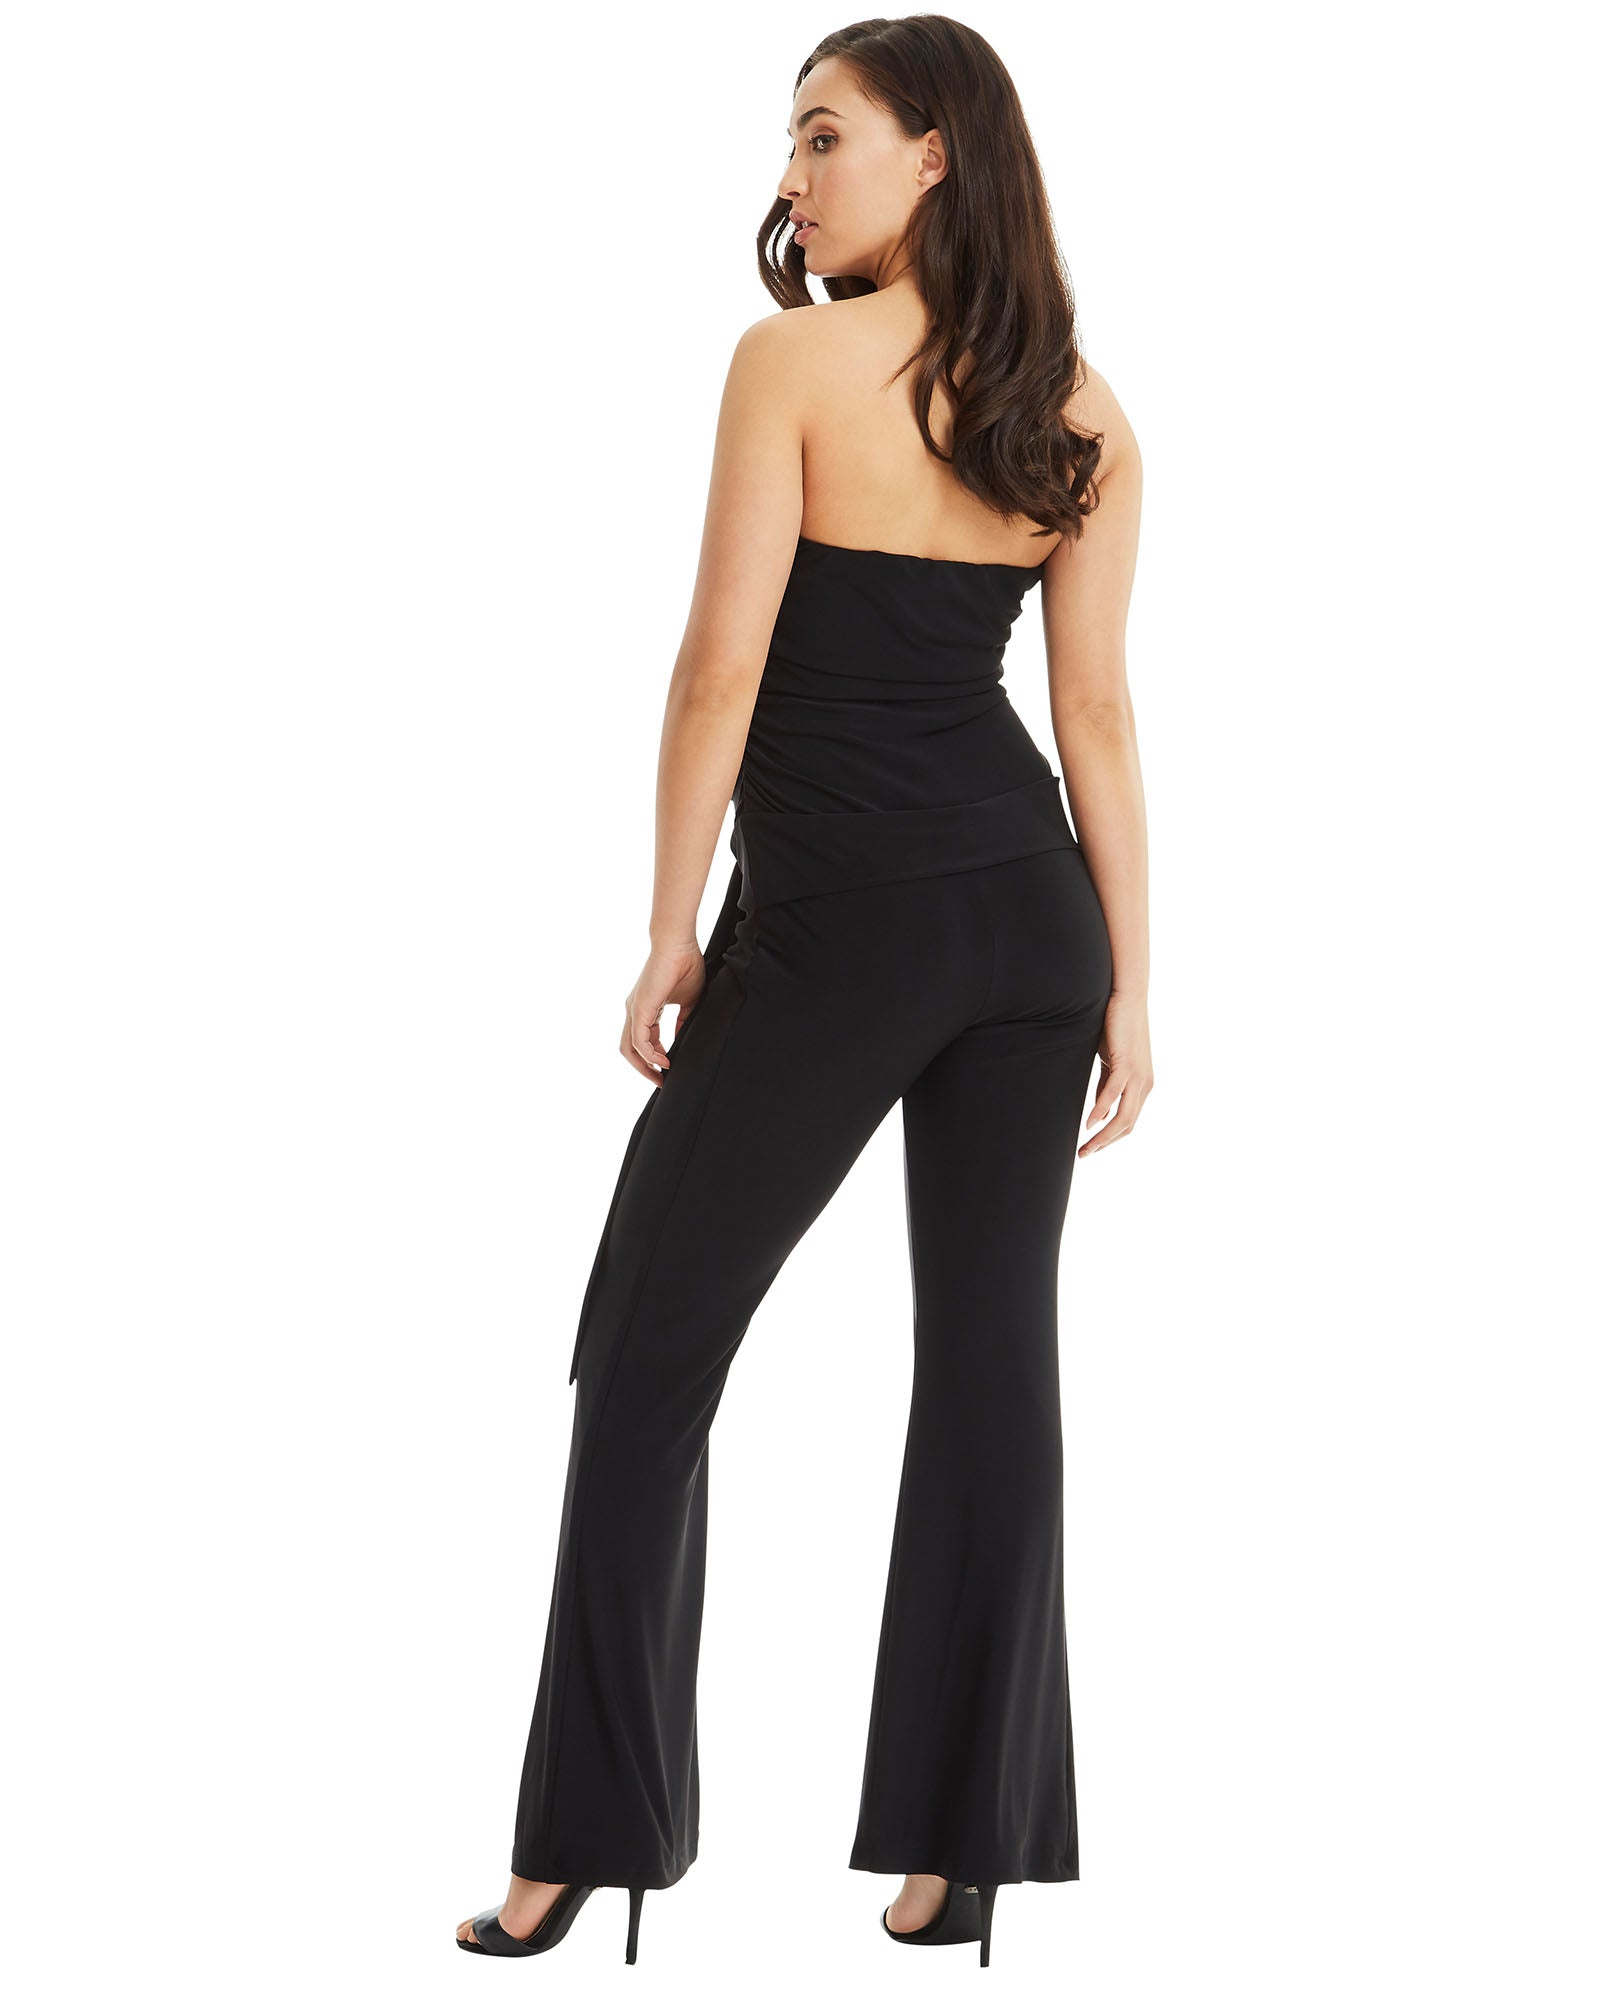 Strapless Jumpsuit with Gold Buckle - Black